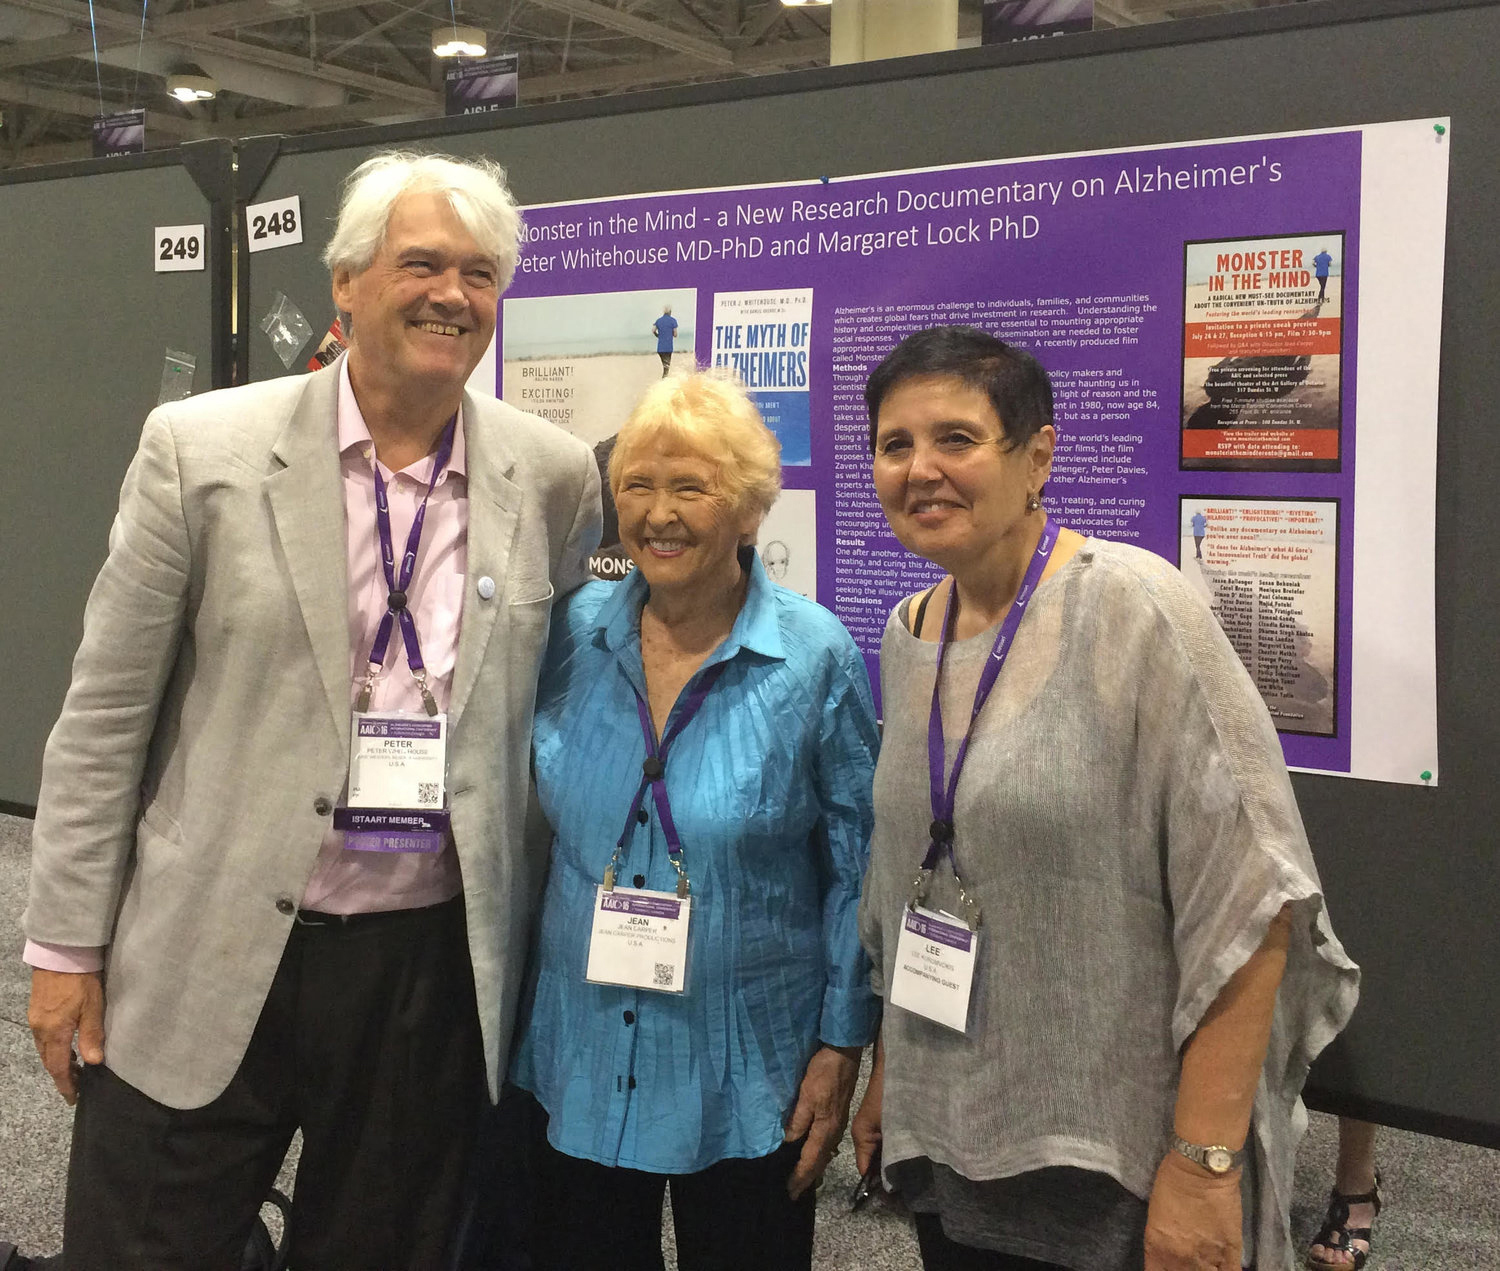 """Dr. Peter Whitehouse, left, pictured here with producers Jean Carper, center, and Lee Koromvokis presented a scientific paper on """"Monster In the Mind,"""" at the Alzheimer Association's International Conference in Toronto, 2016. (Photo by Kirti Khalsa)"""